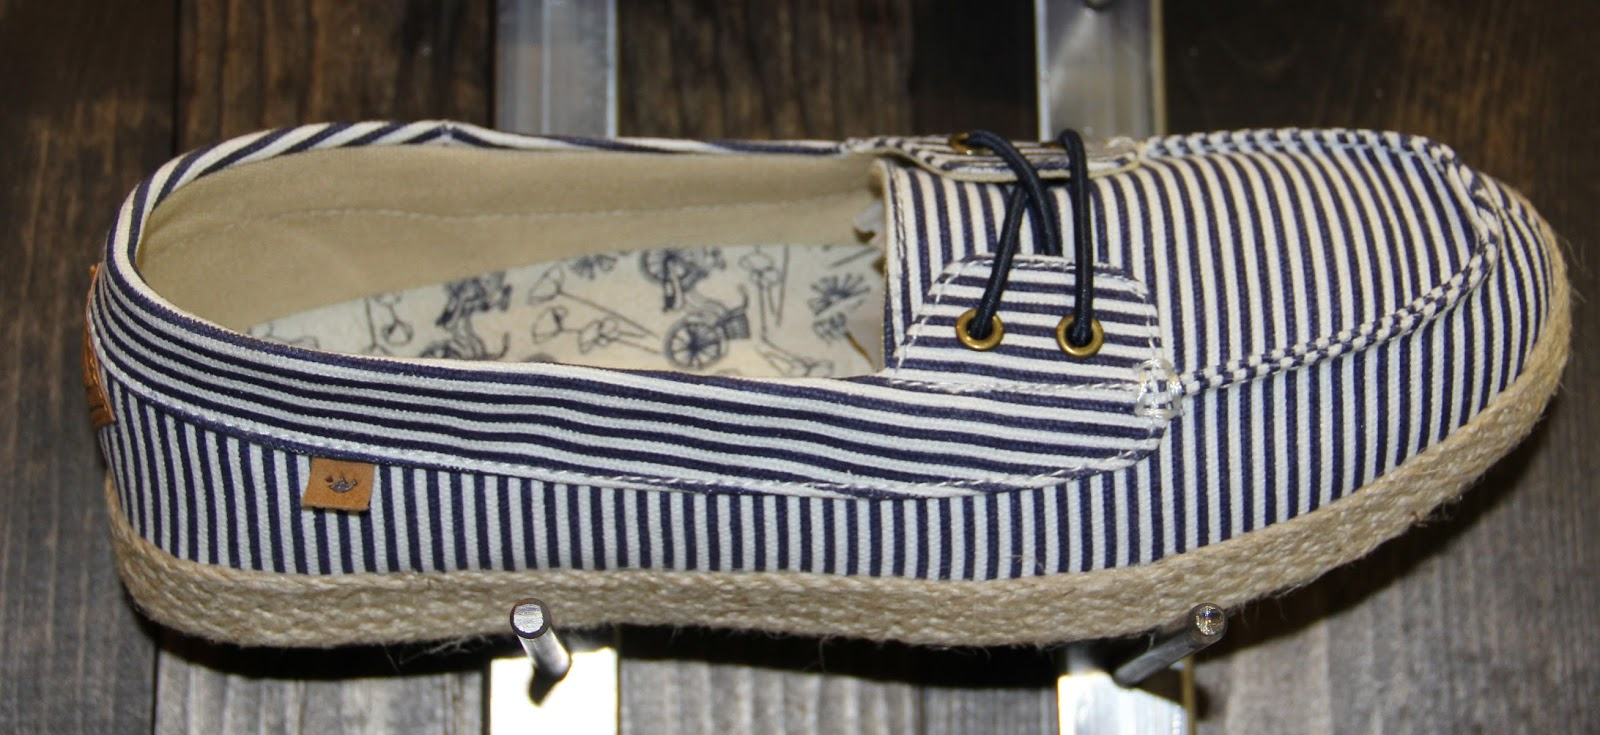 Color Trends Blues Pastels Outdoor Retailer S 2015 Espro Napoly Genuine Leather Portofolio Bag Black Loveboat Jute The Crafty Trim Contrasts Well With This Boat Shoe Style Cotton Canvas Upper Wrap Slip On That Comfy Super Pillow Insole